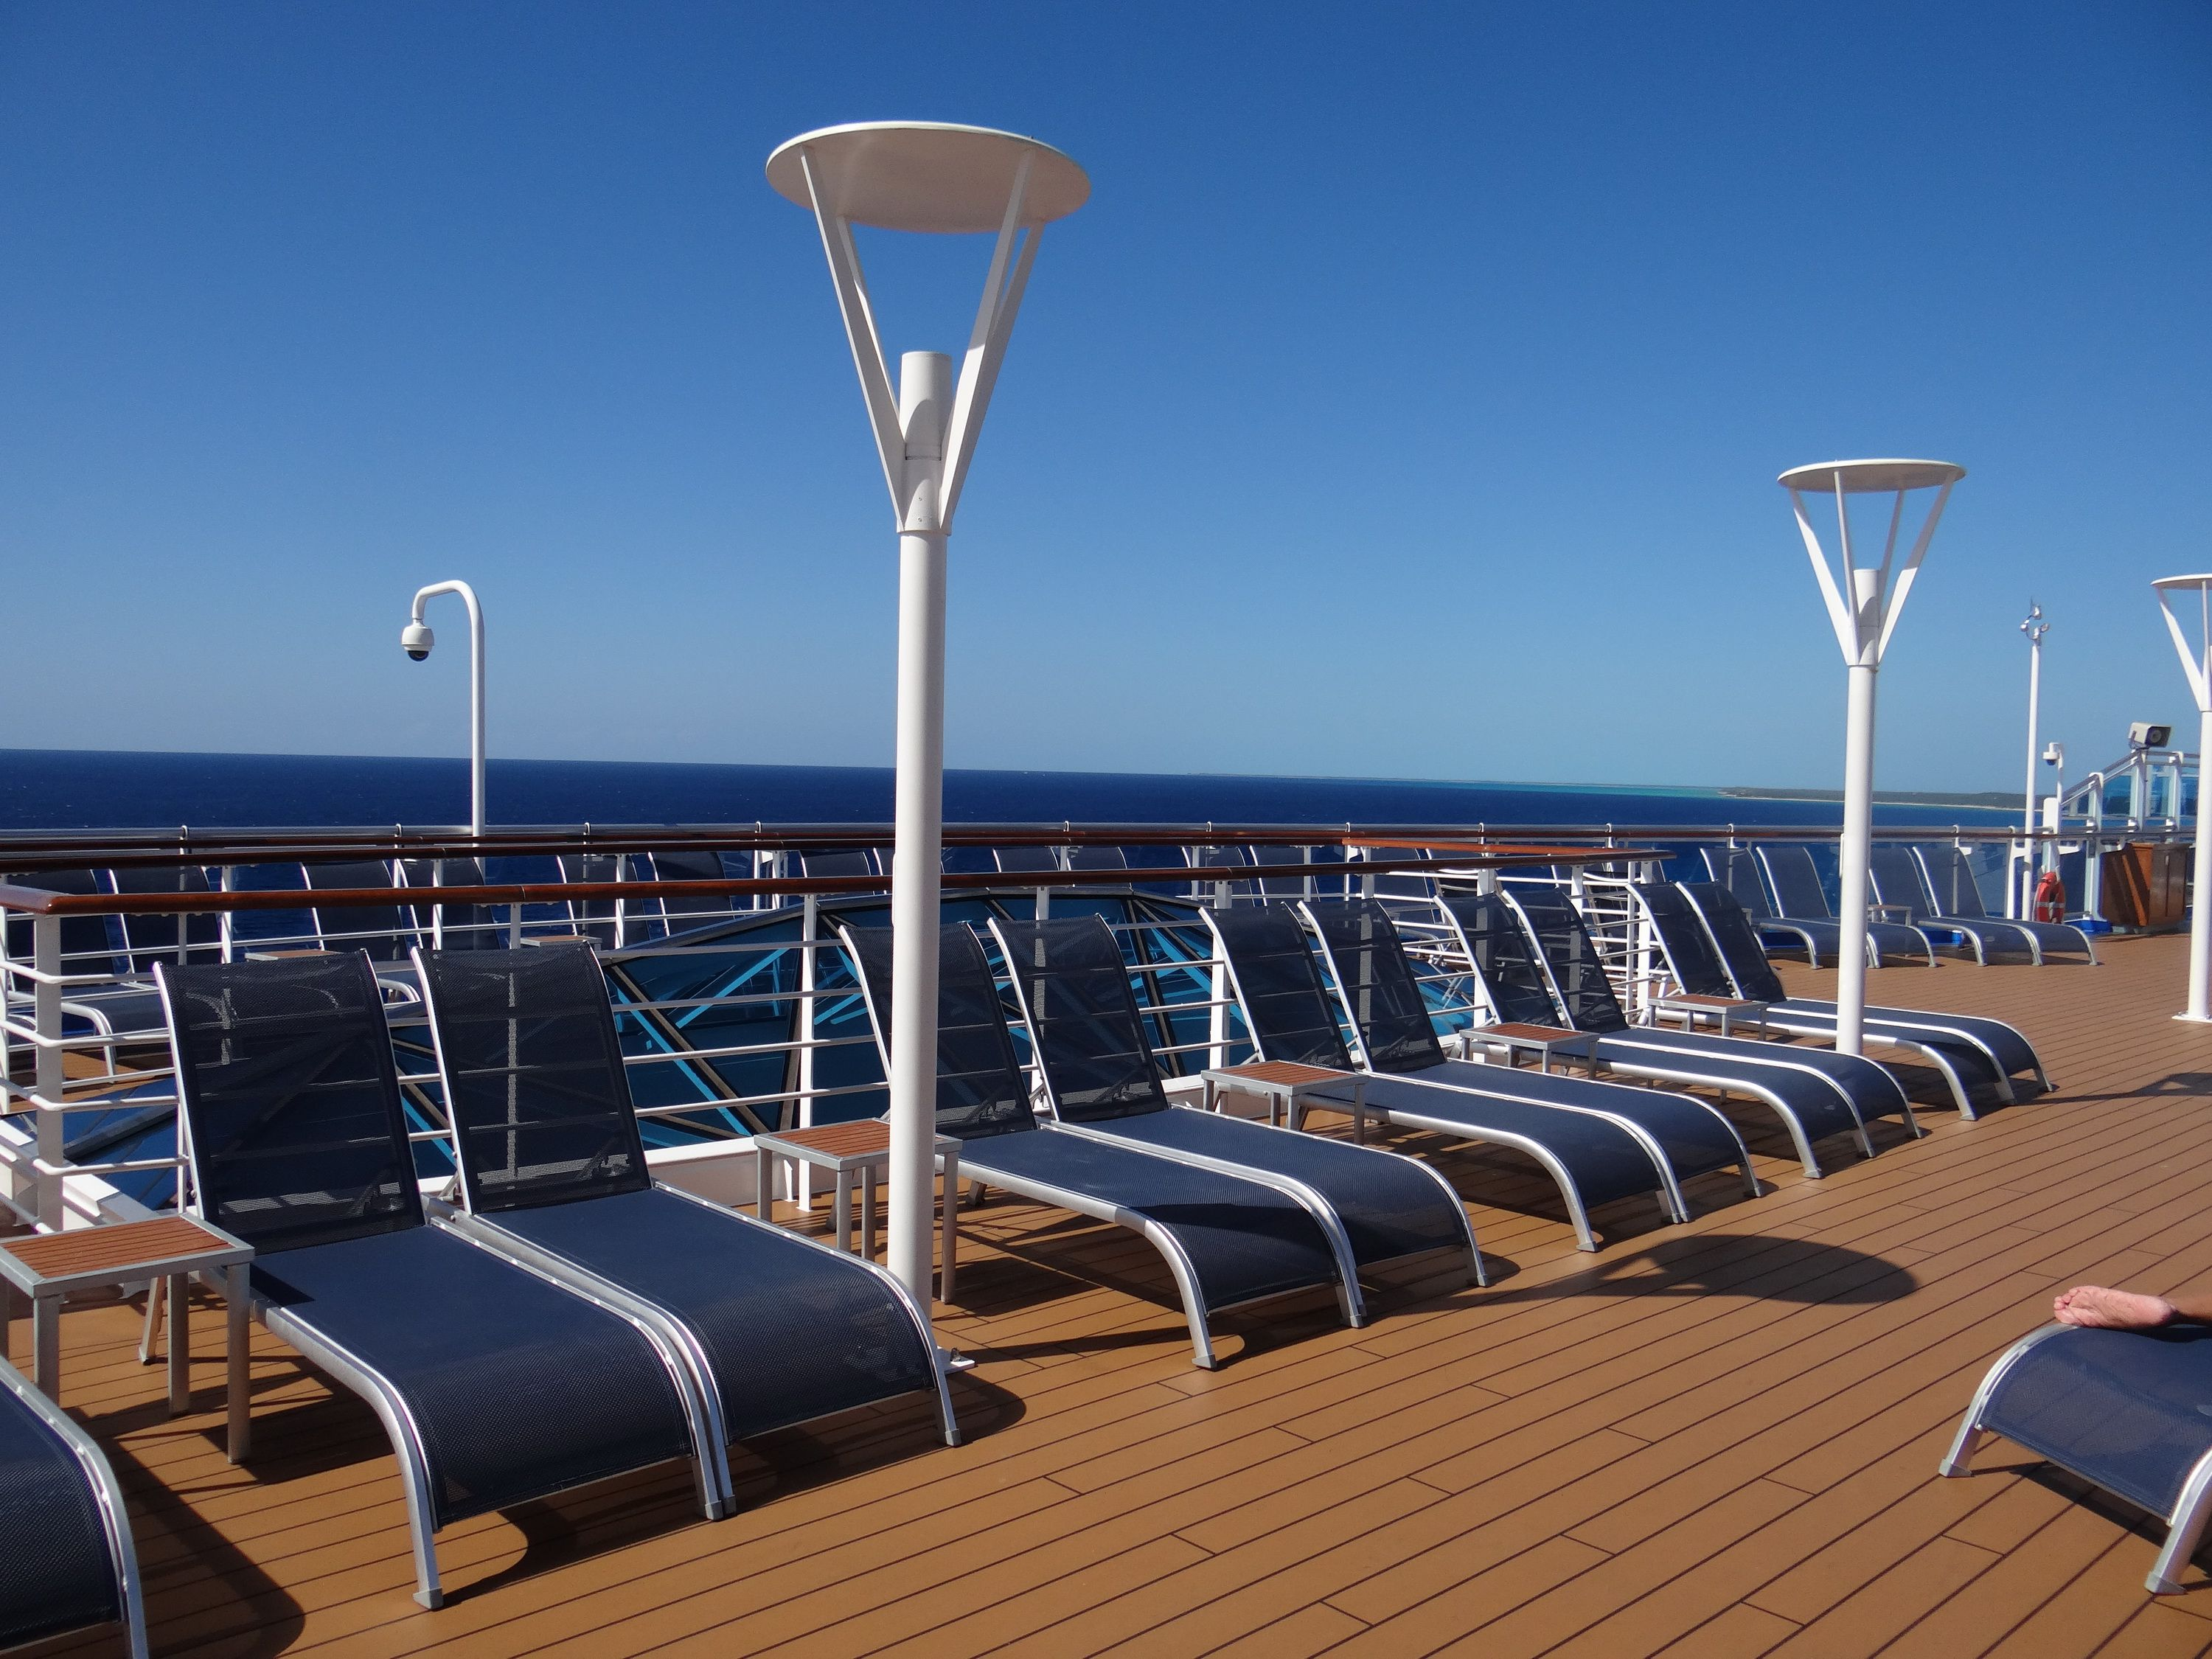 Deck chairs on the Regal Princess